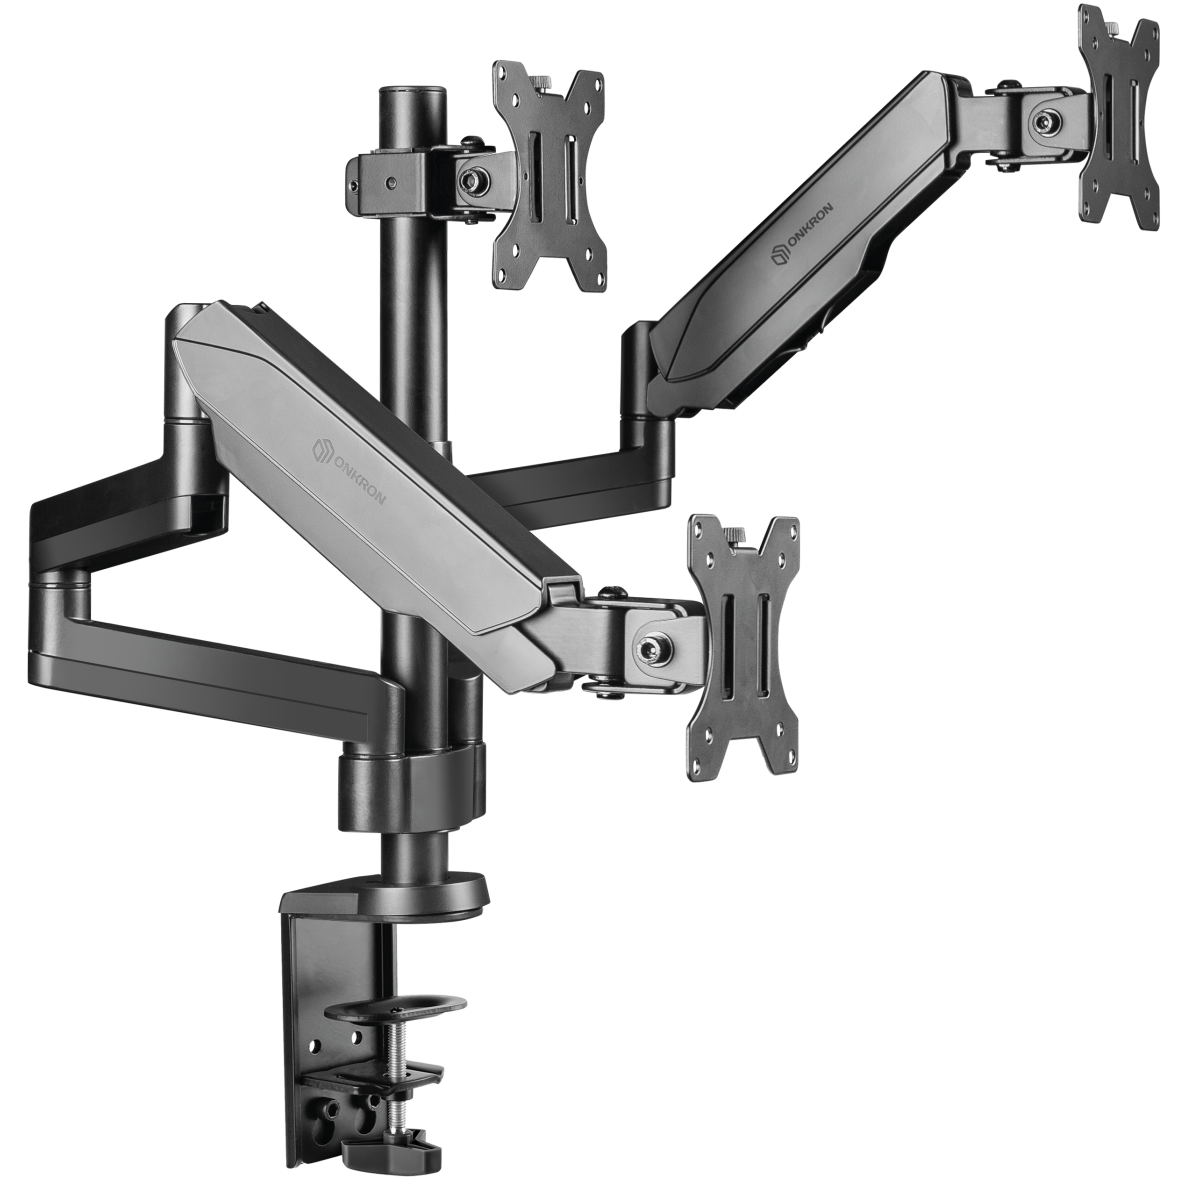 "ONKRON Triple Monitor Desk Mount Stand for 13"" - 32 Inch 17.6 lbs G280 Black"